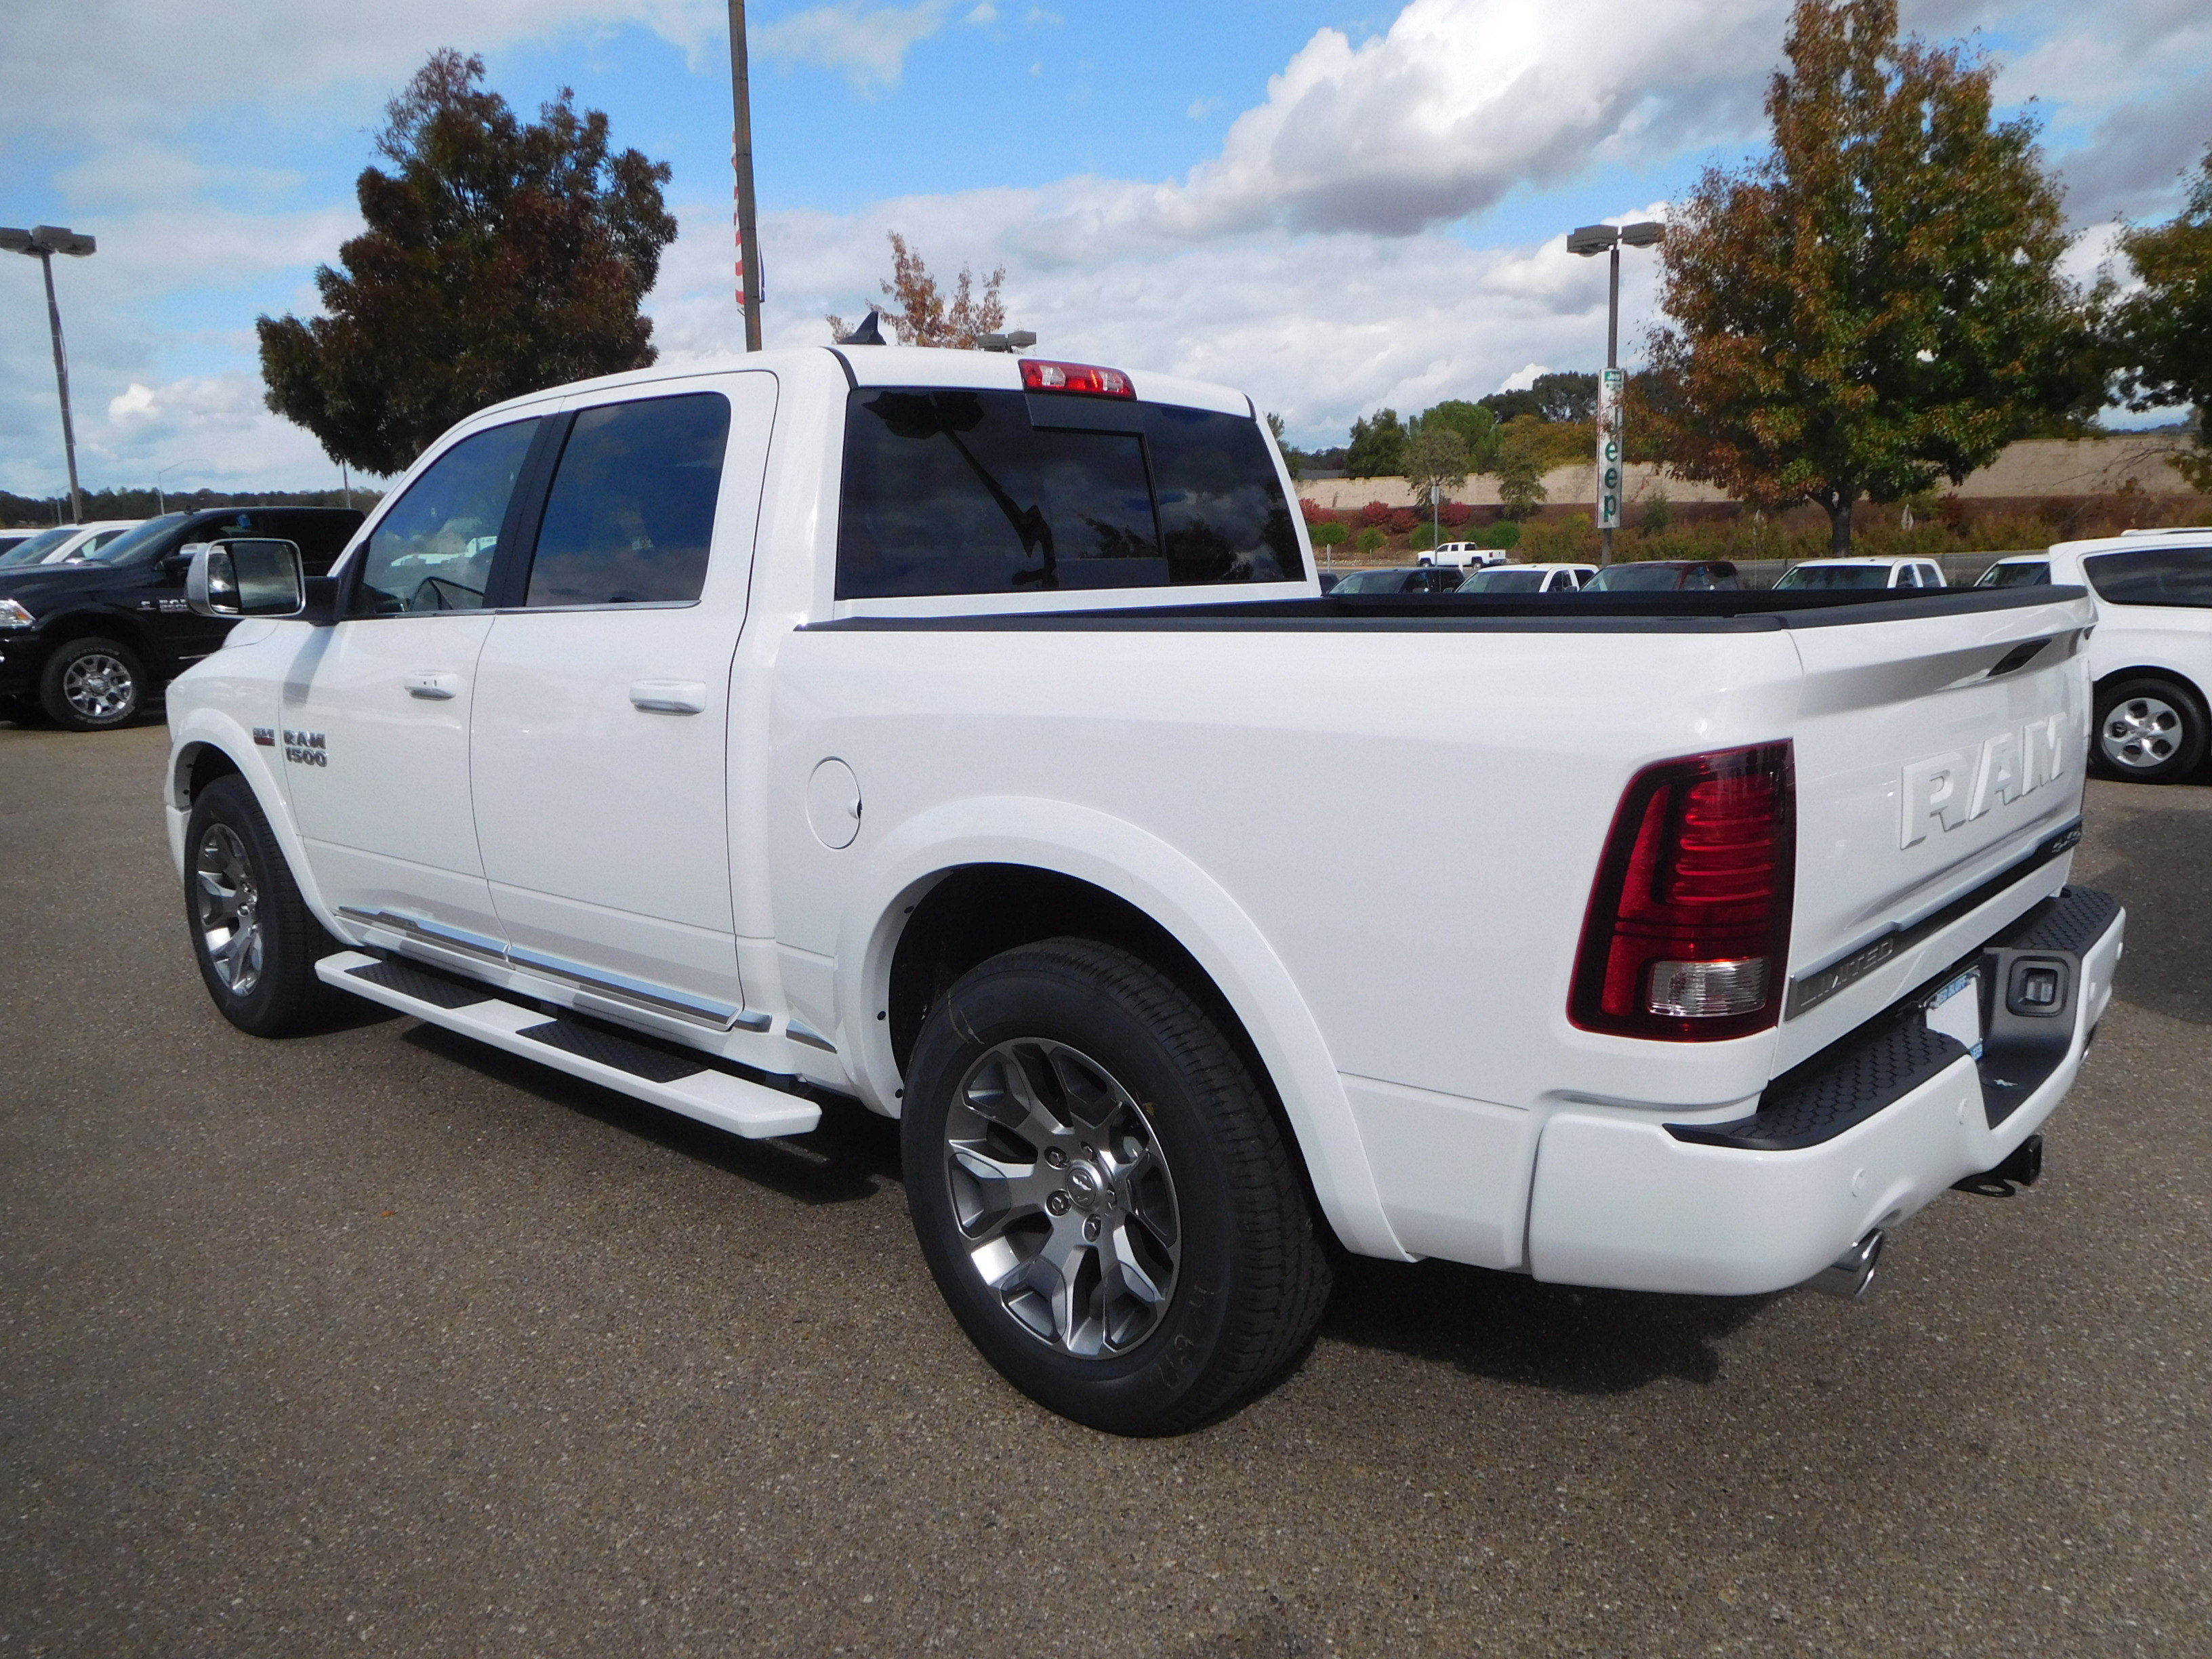 2018 Ram 1500 Crew Cab 4x4, Pickup #15386 - photo 7